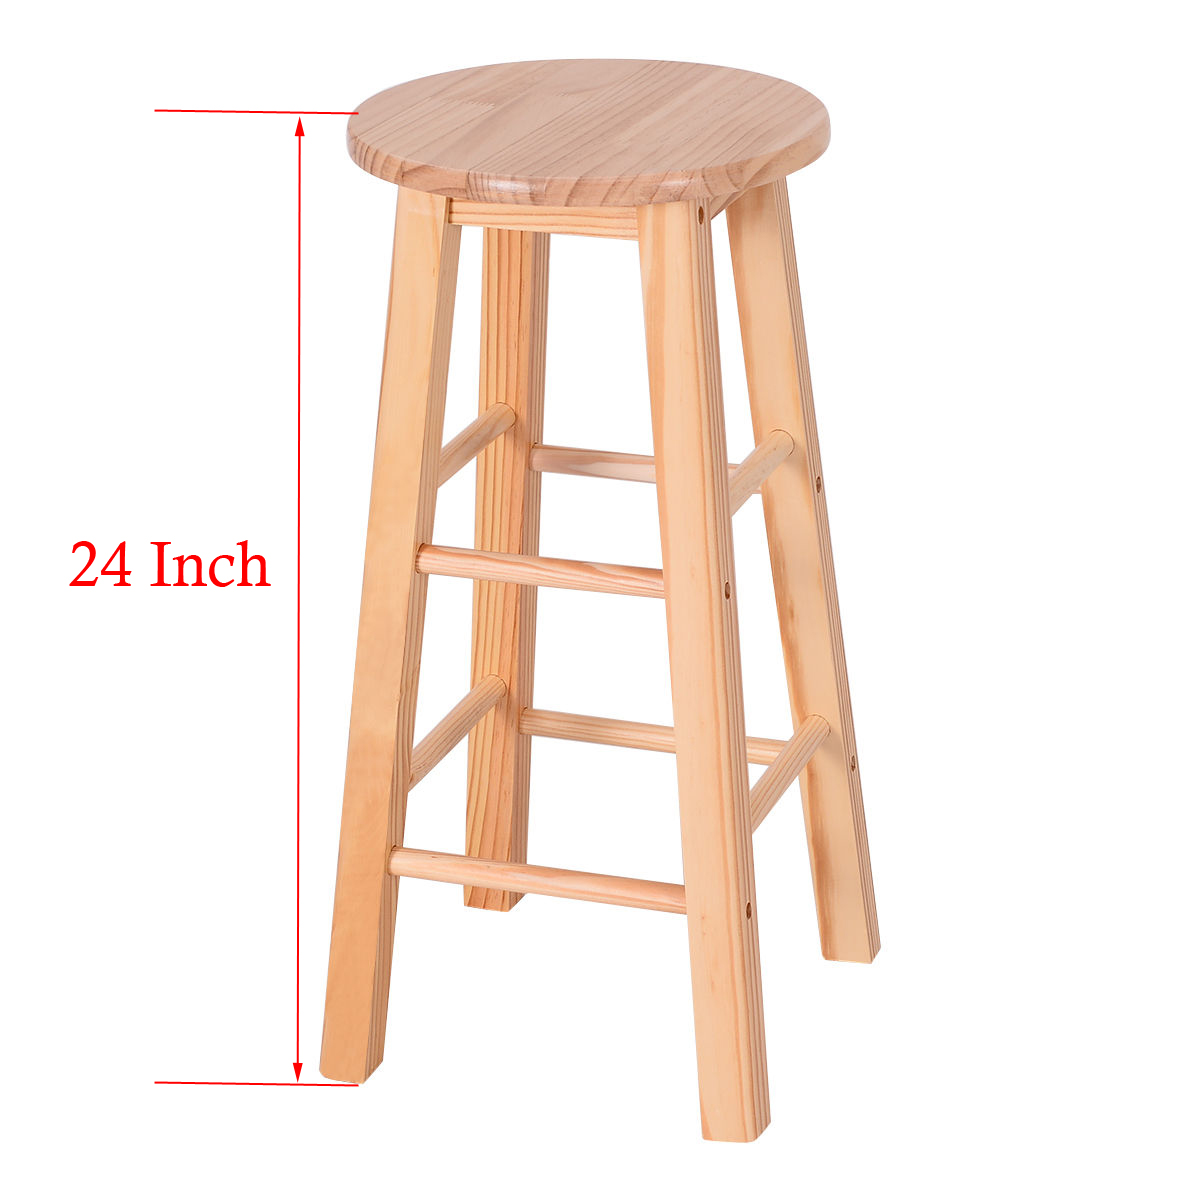 Set of 2 wood counter stools bar stools dining kitchen for 24 inch bar stools